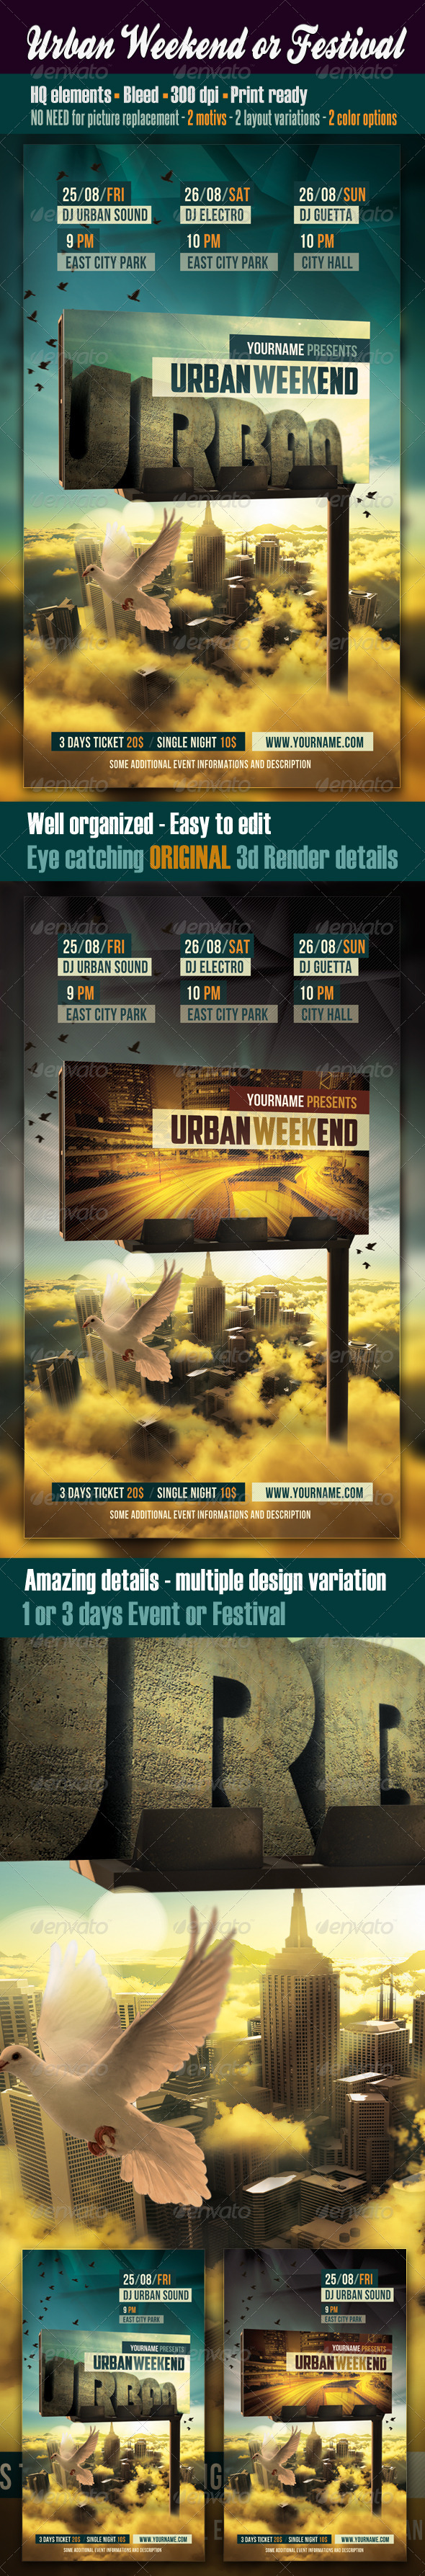 Urban Weekend Or Festival Flyer - Clubs & Parties Events